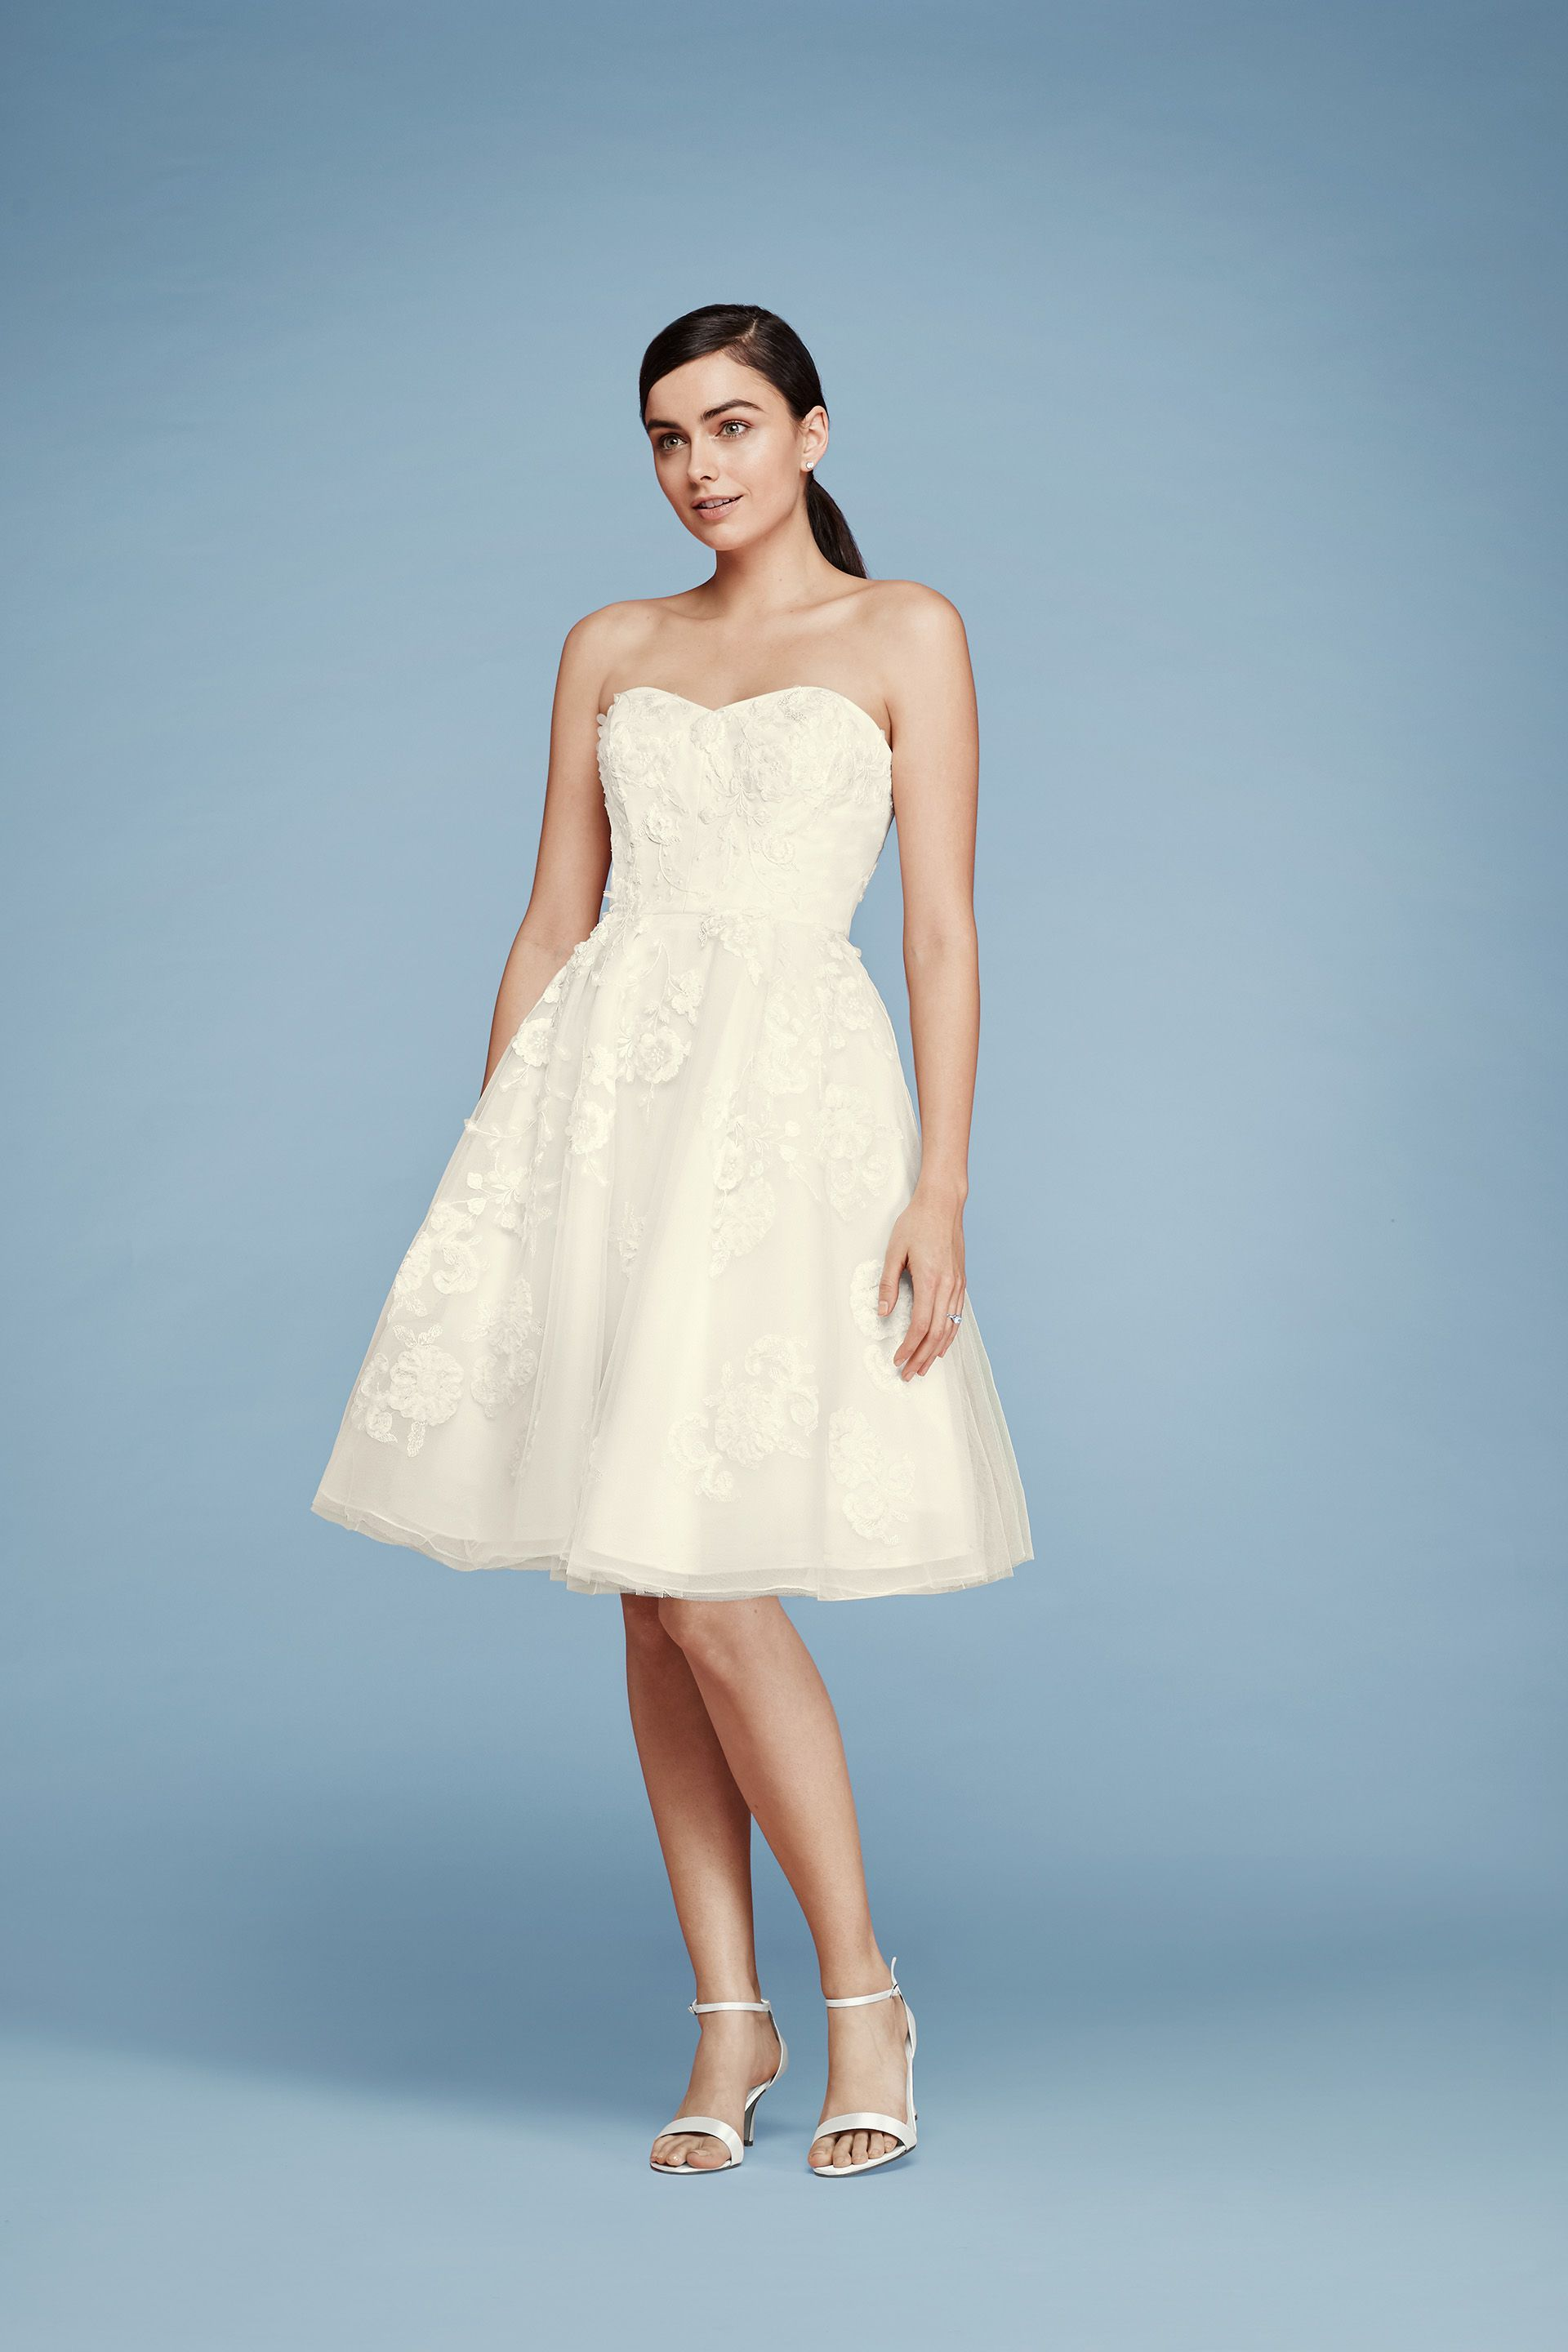 Cheers Cynthia Rowley Short Lace Strapless Wedding Dress | Beautiful ...